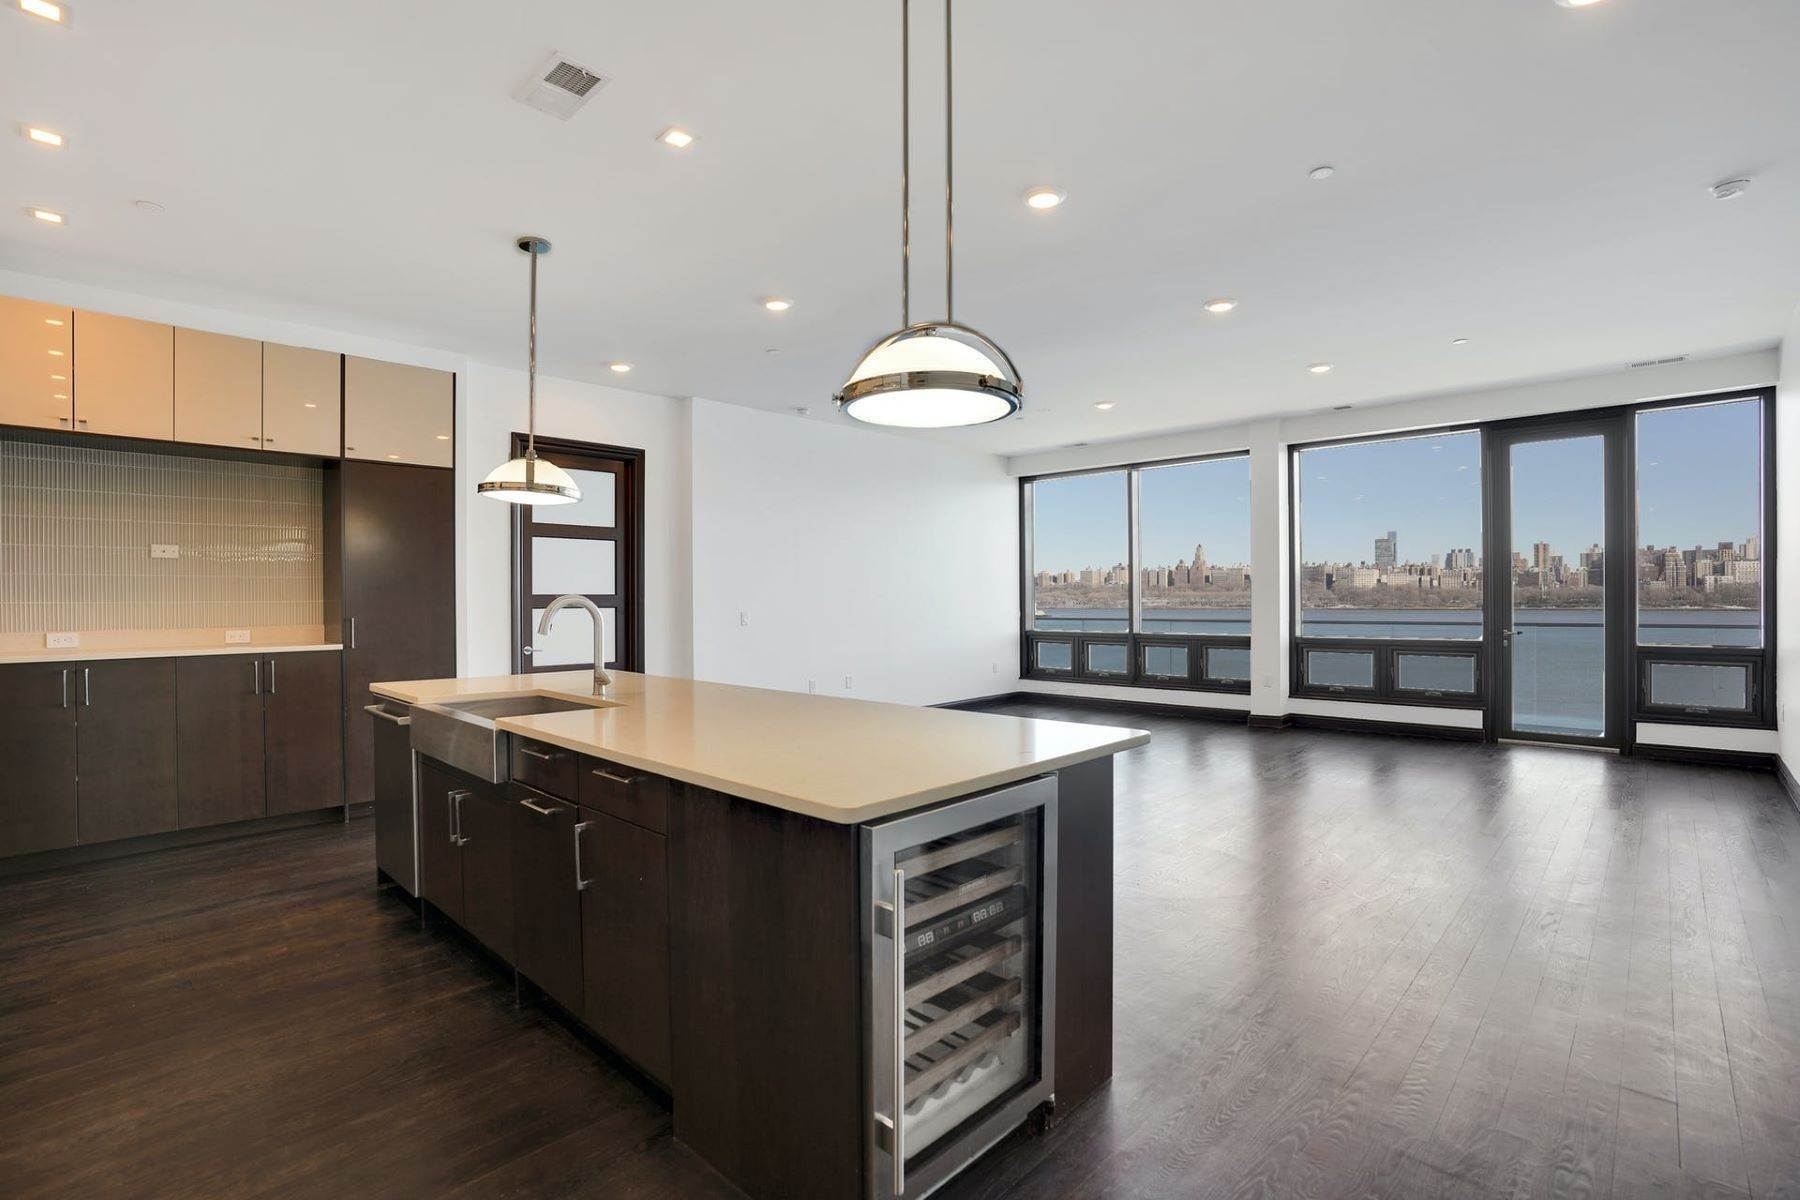 Condominiums for Sale at 9 Somerset Ln 604, Edgewater NJ 07020 9 Somerset Ln, 604, Edgewater, New Jersey 07020 United States